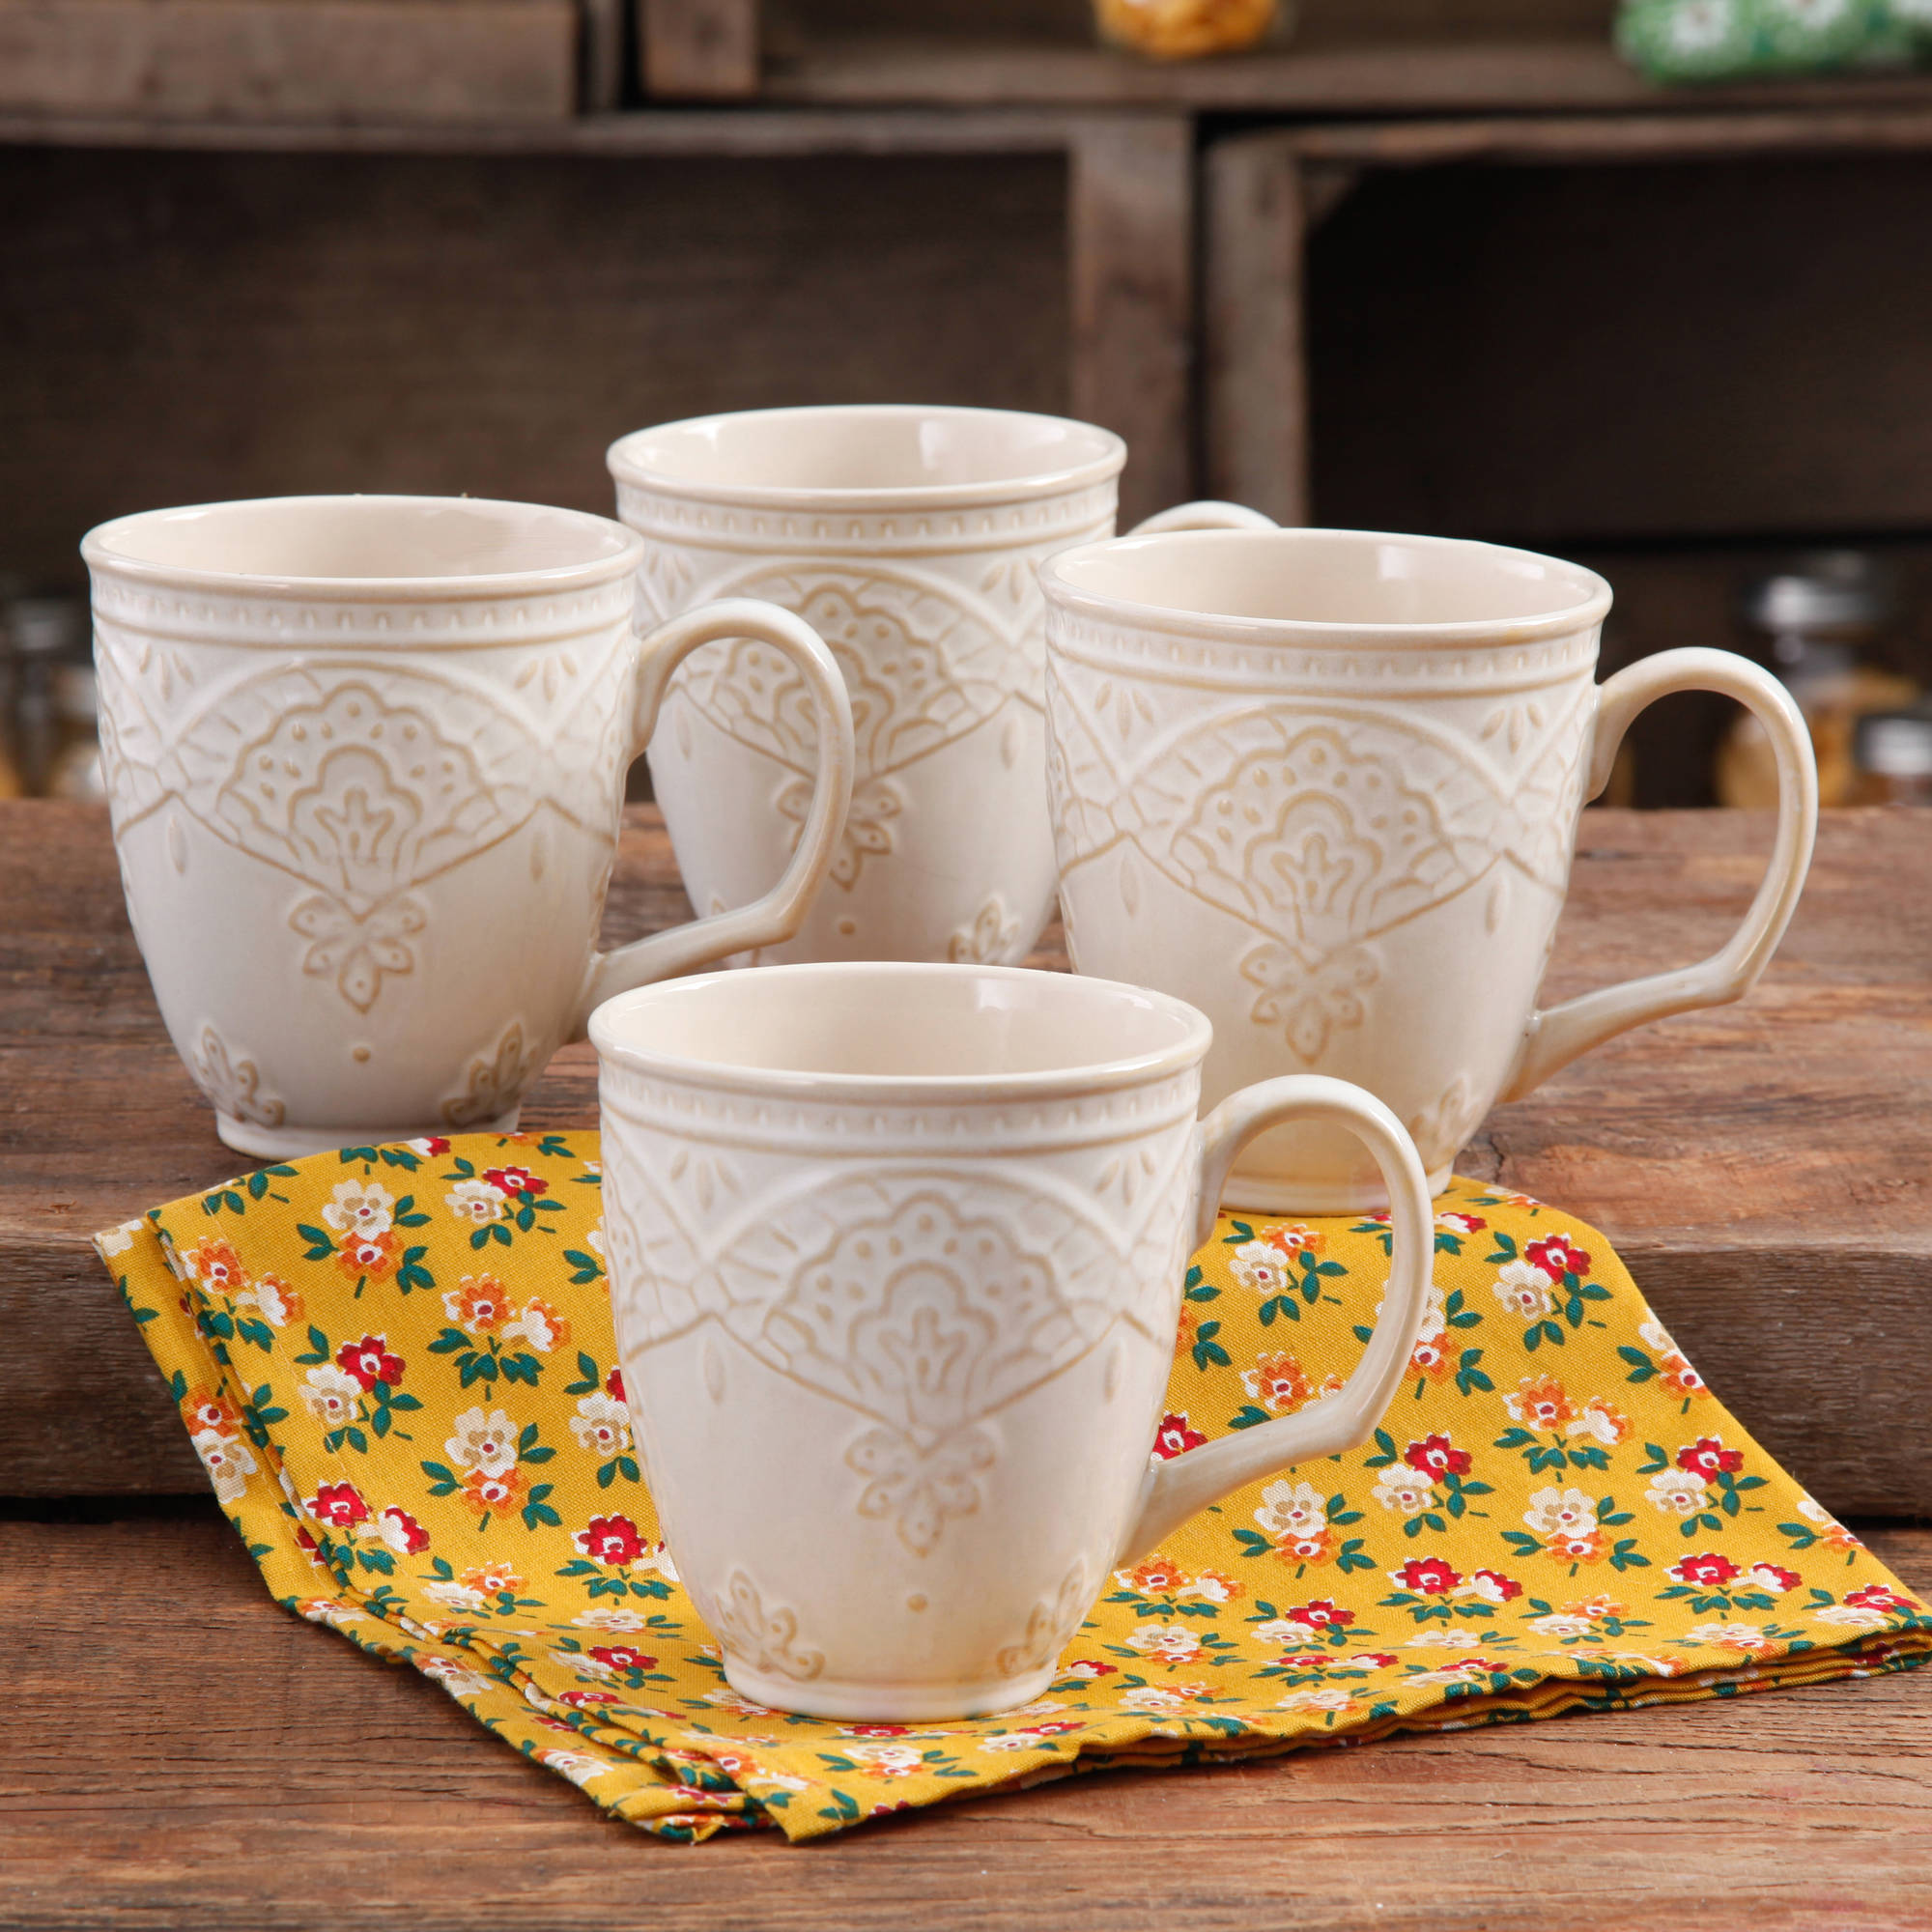 The Pioneer Woman Farmhouse Lace Mug Set, 4-Pack